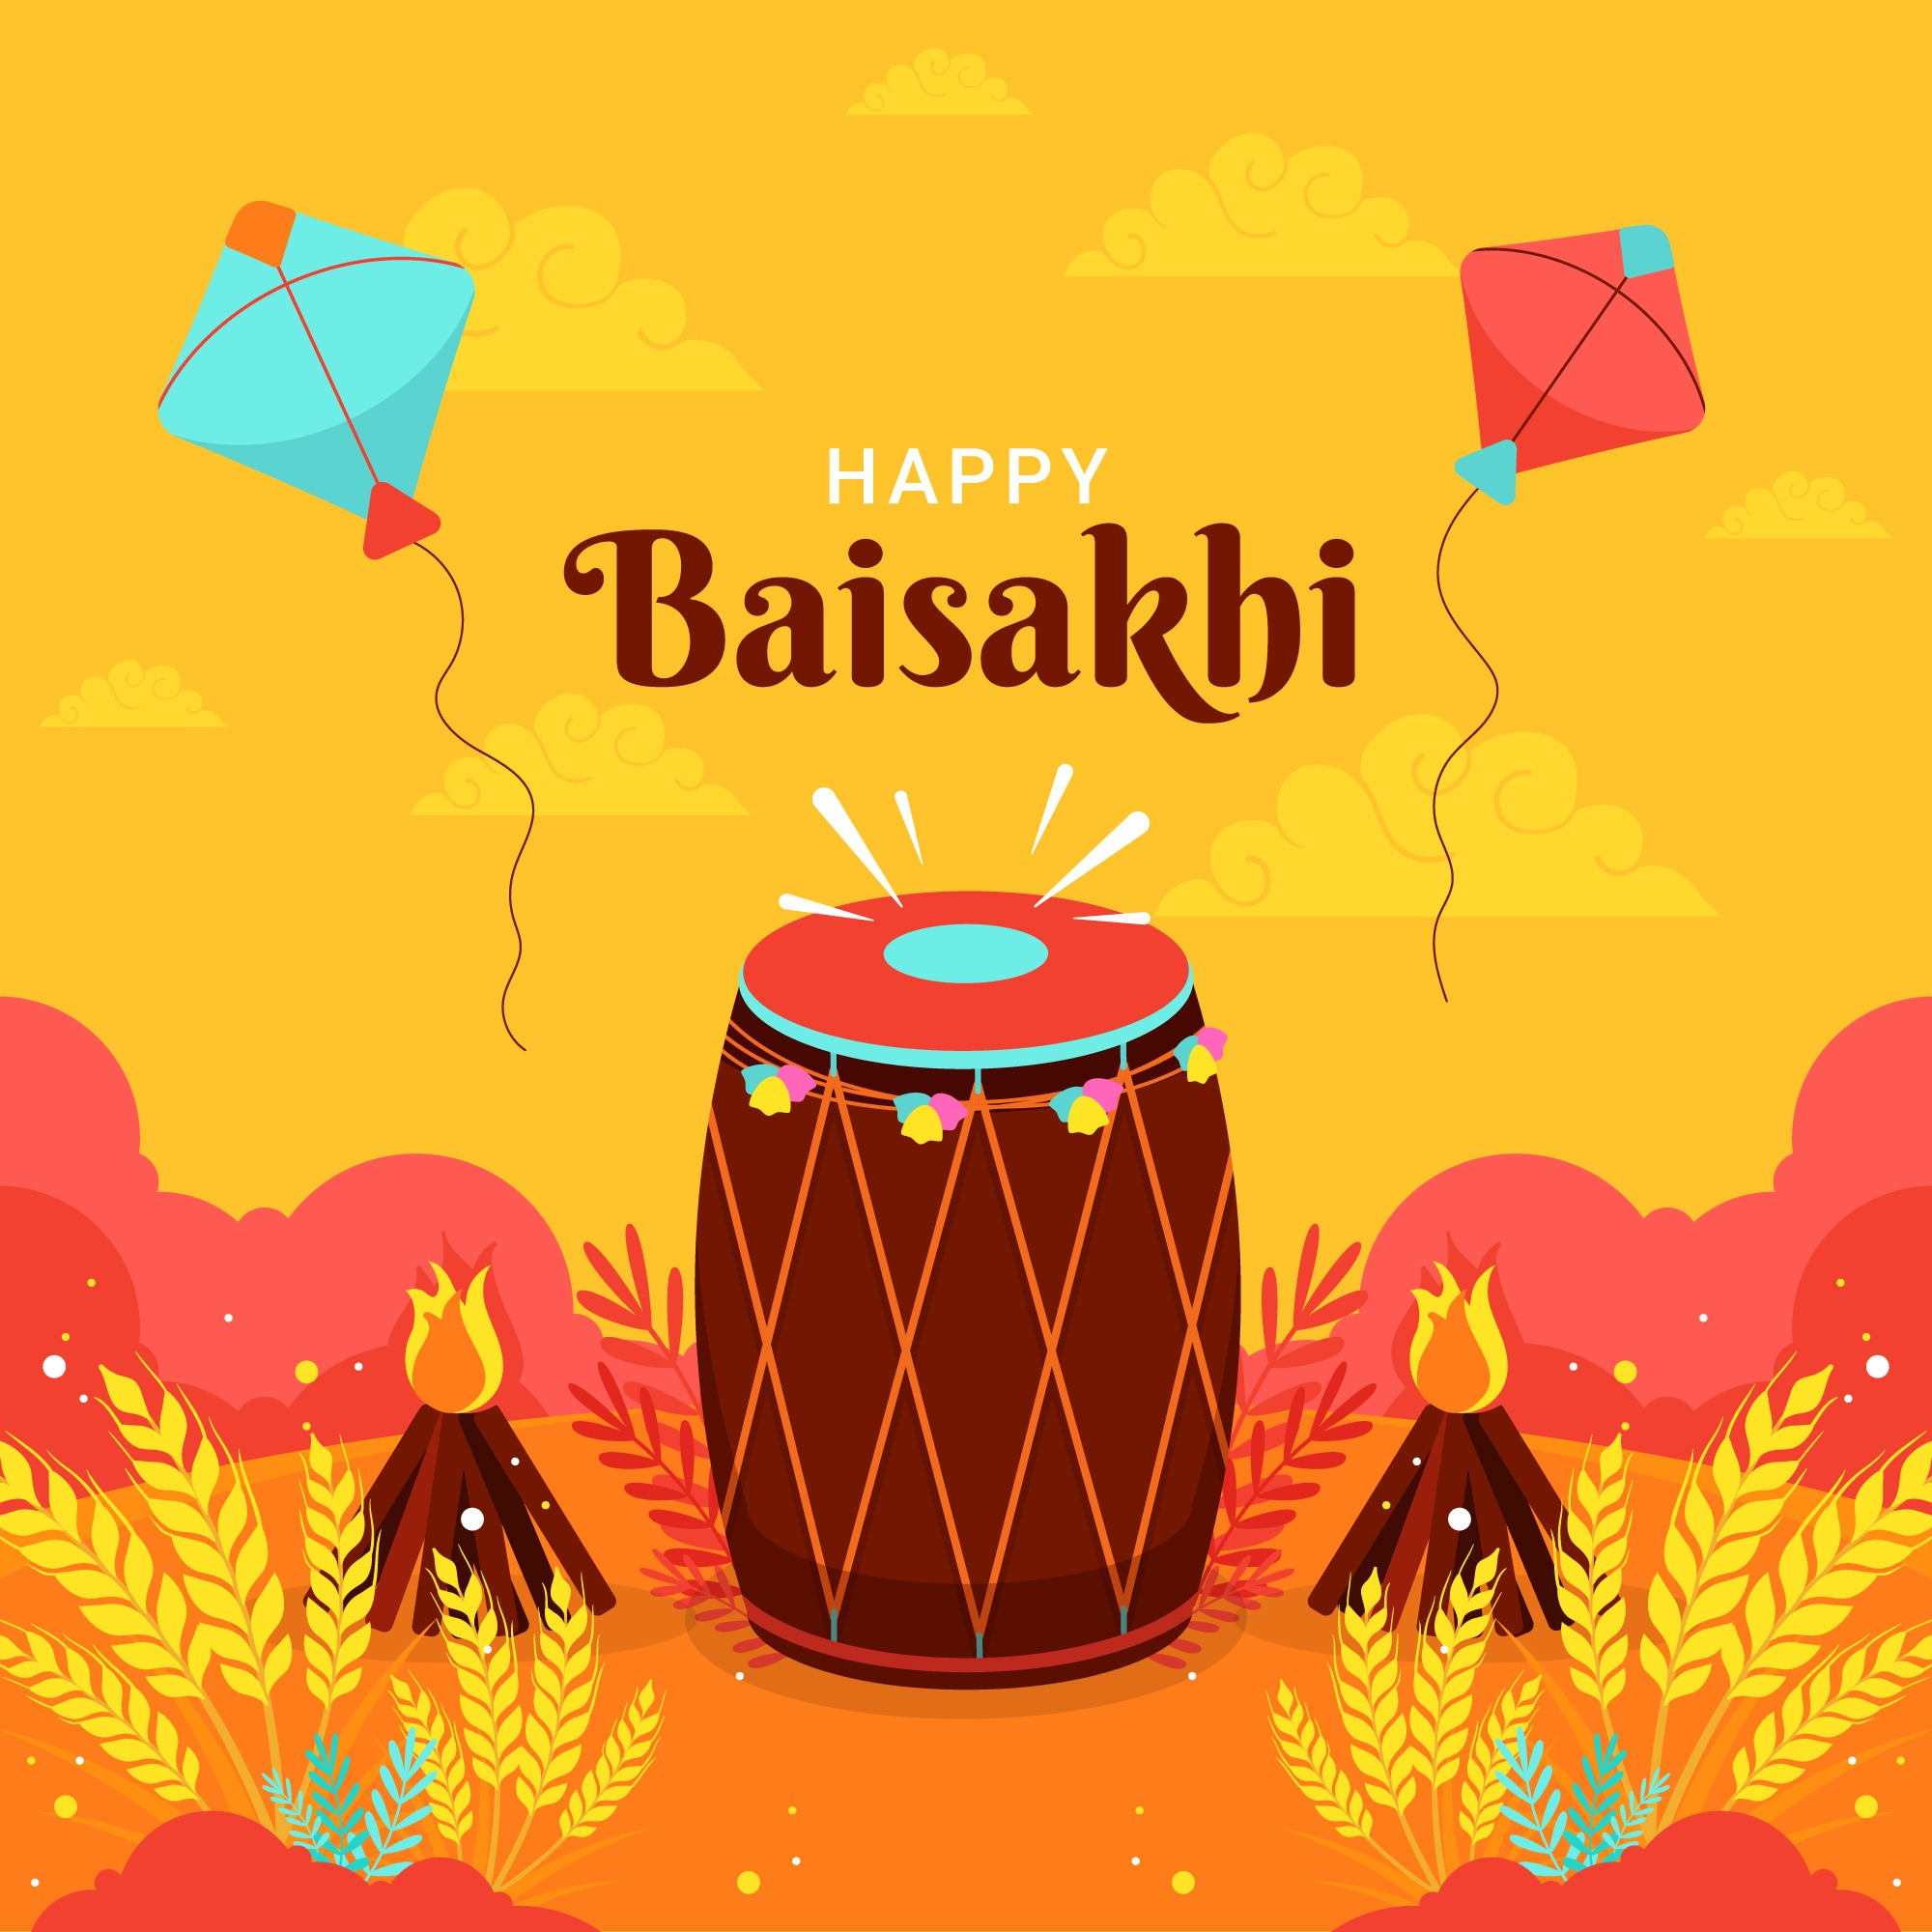 happy baisakhi picture